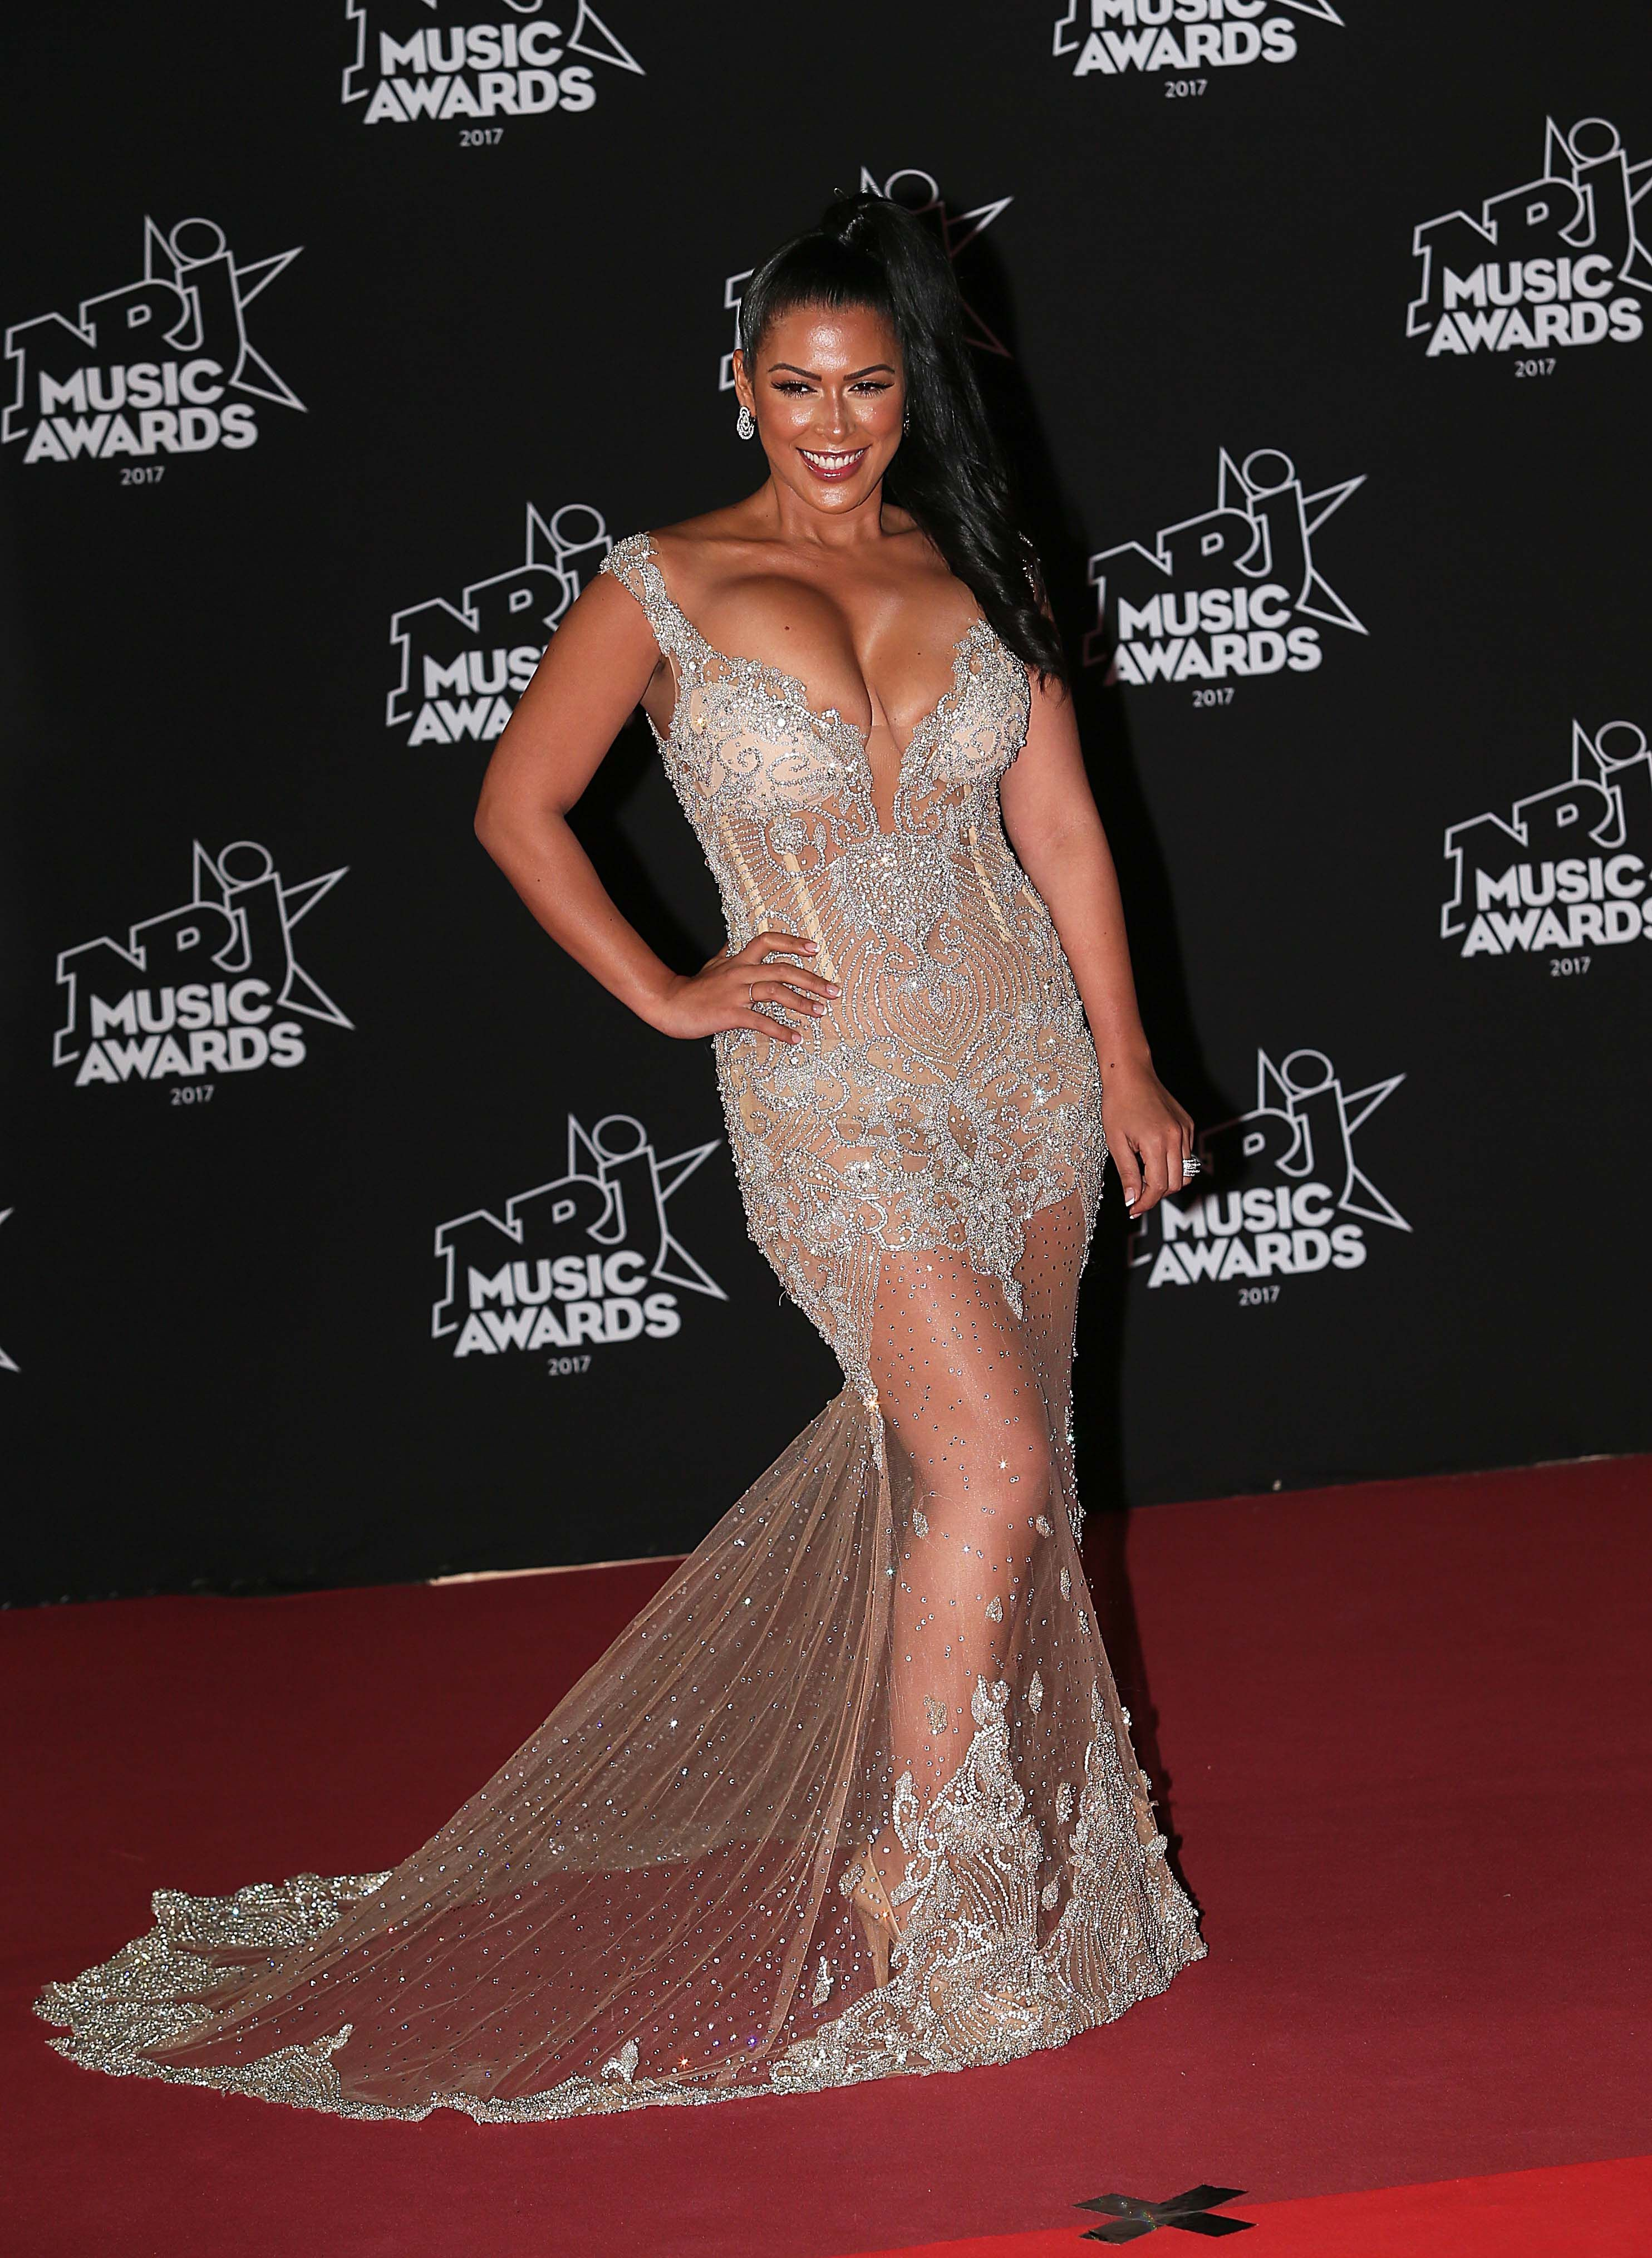 Nrj Music Awards 2017 Ayem Nour Maman Sexy Son Decollete Choque